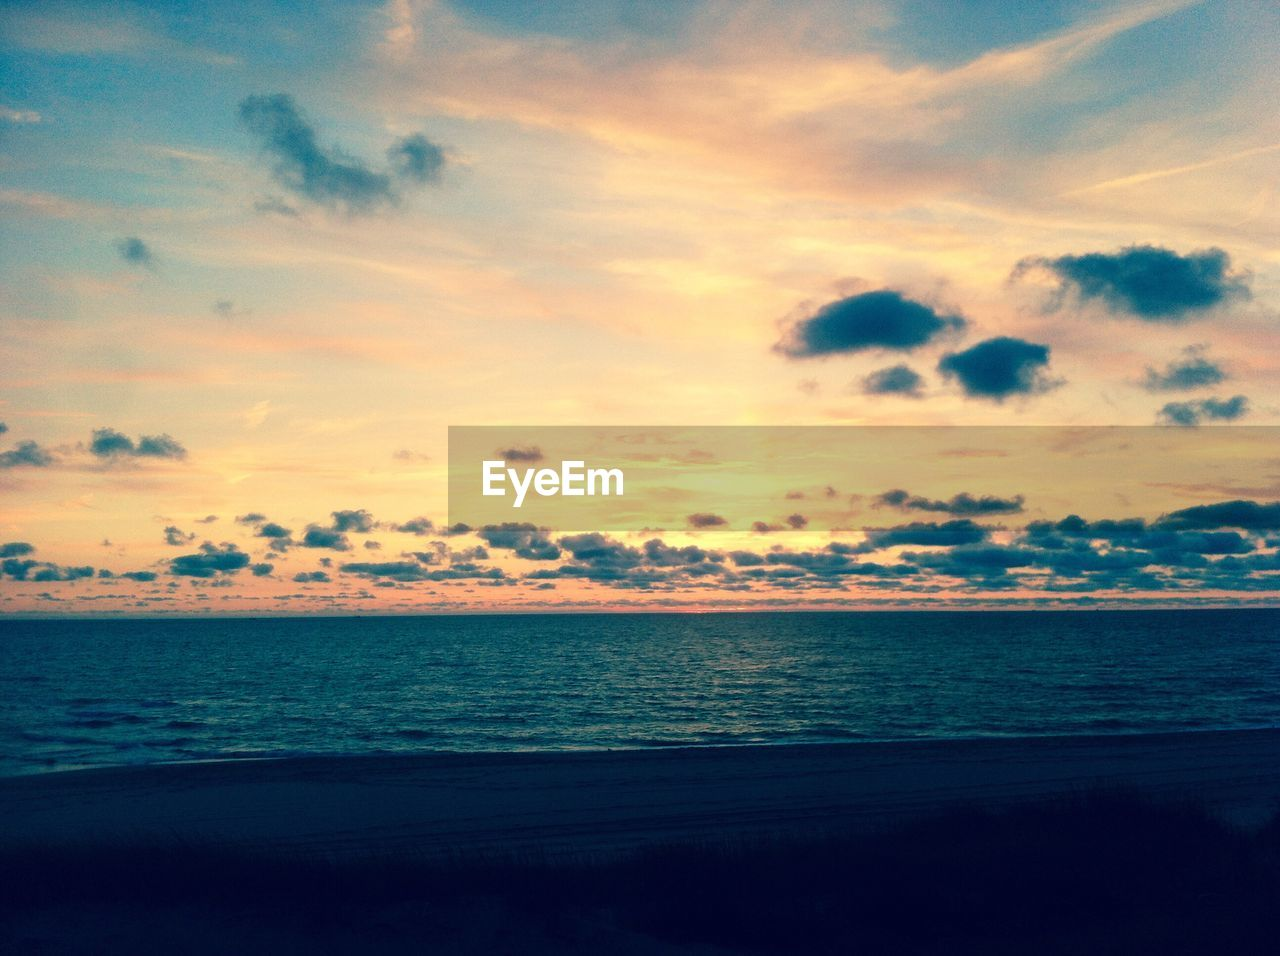 sea, sky, sunset, scenics, tranquil scene, water, beauty in nature, tranquility, nature, horizon over water, silhouette, idyllic, beach, no people, cloud - sky, outdoors, day